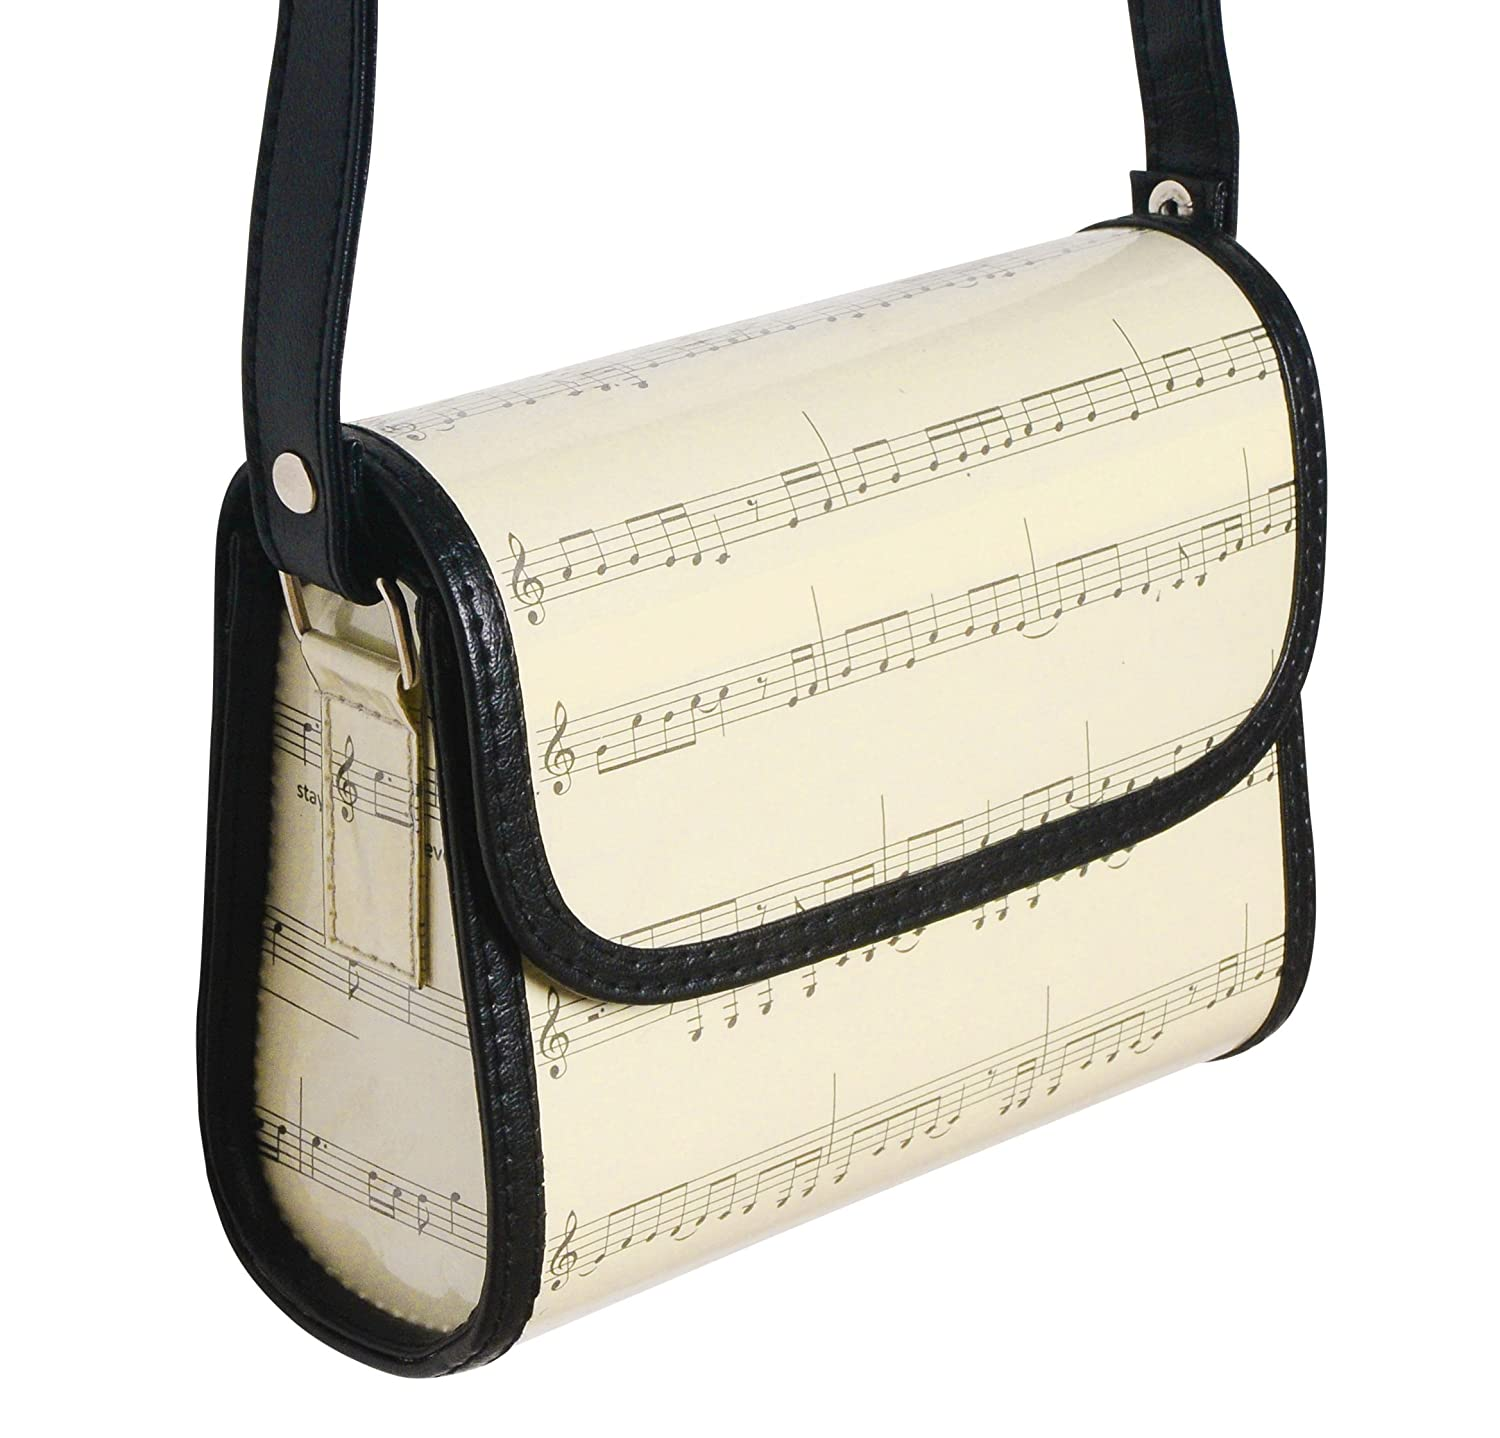 Small crossbody made from music sheets - FREE SHIPPING, upcycled style eco friendly vegan recycled of reclaimed materials repurposed bag gift gifts for musician violinist pianist musical scores clef